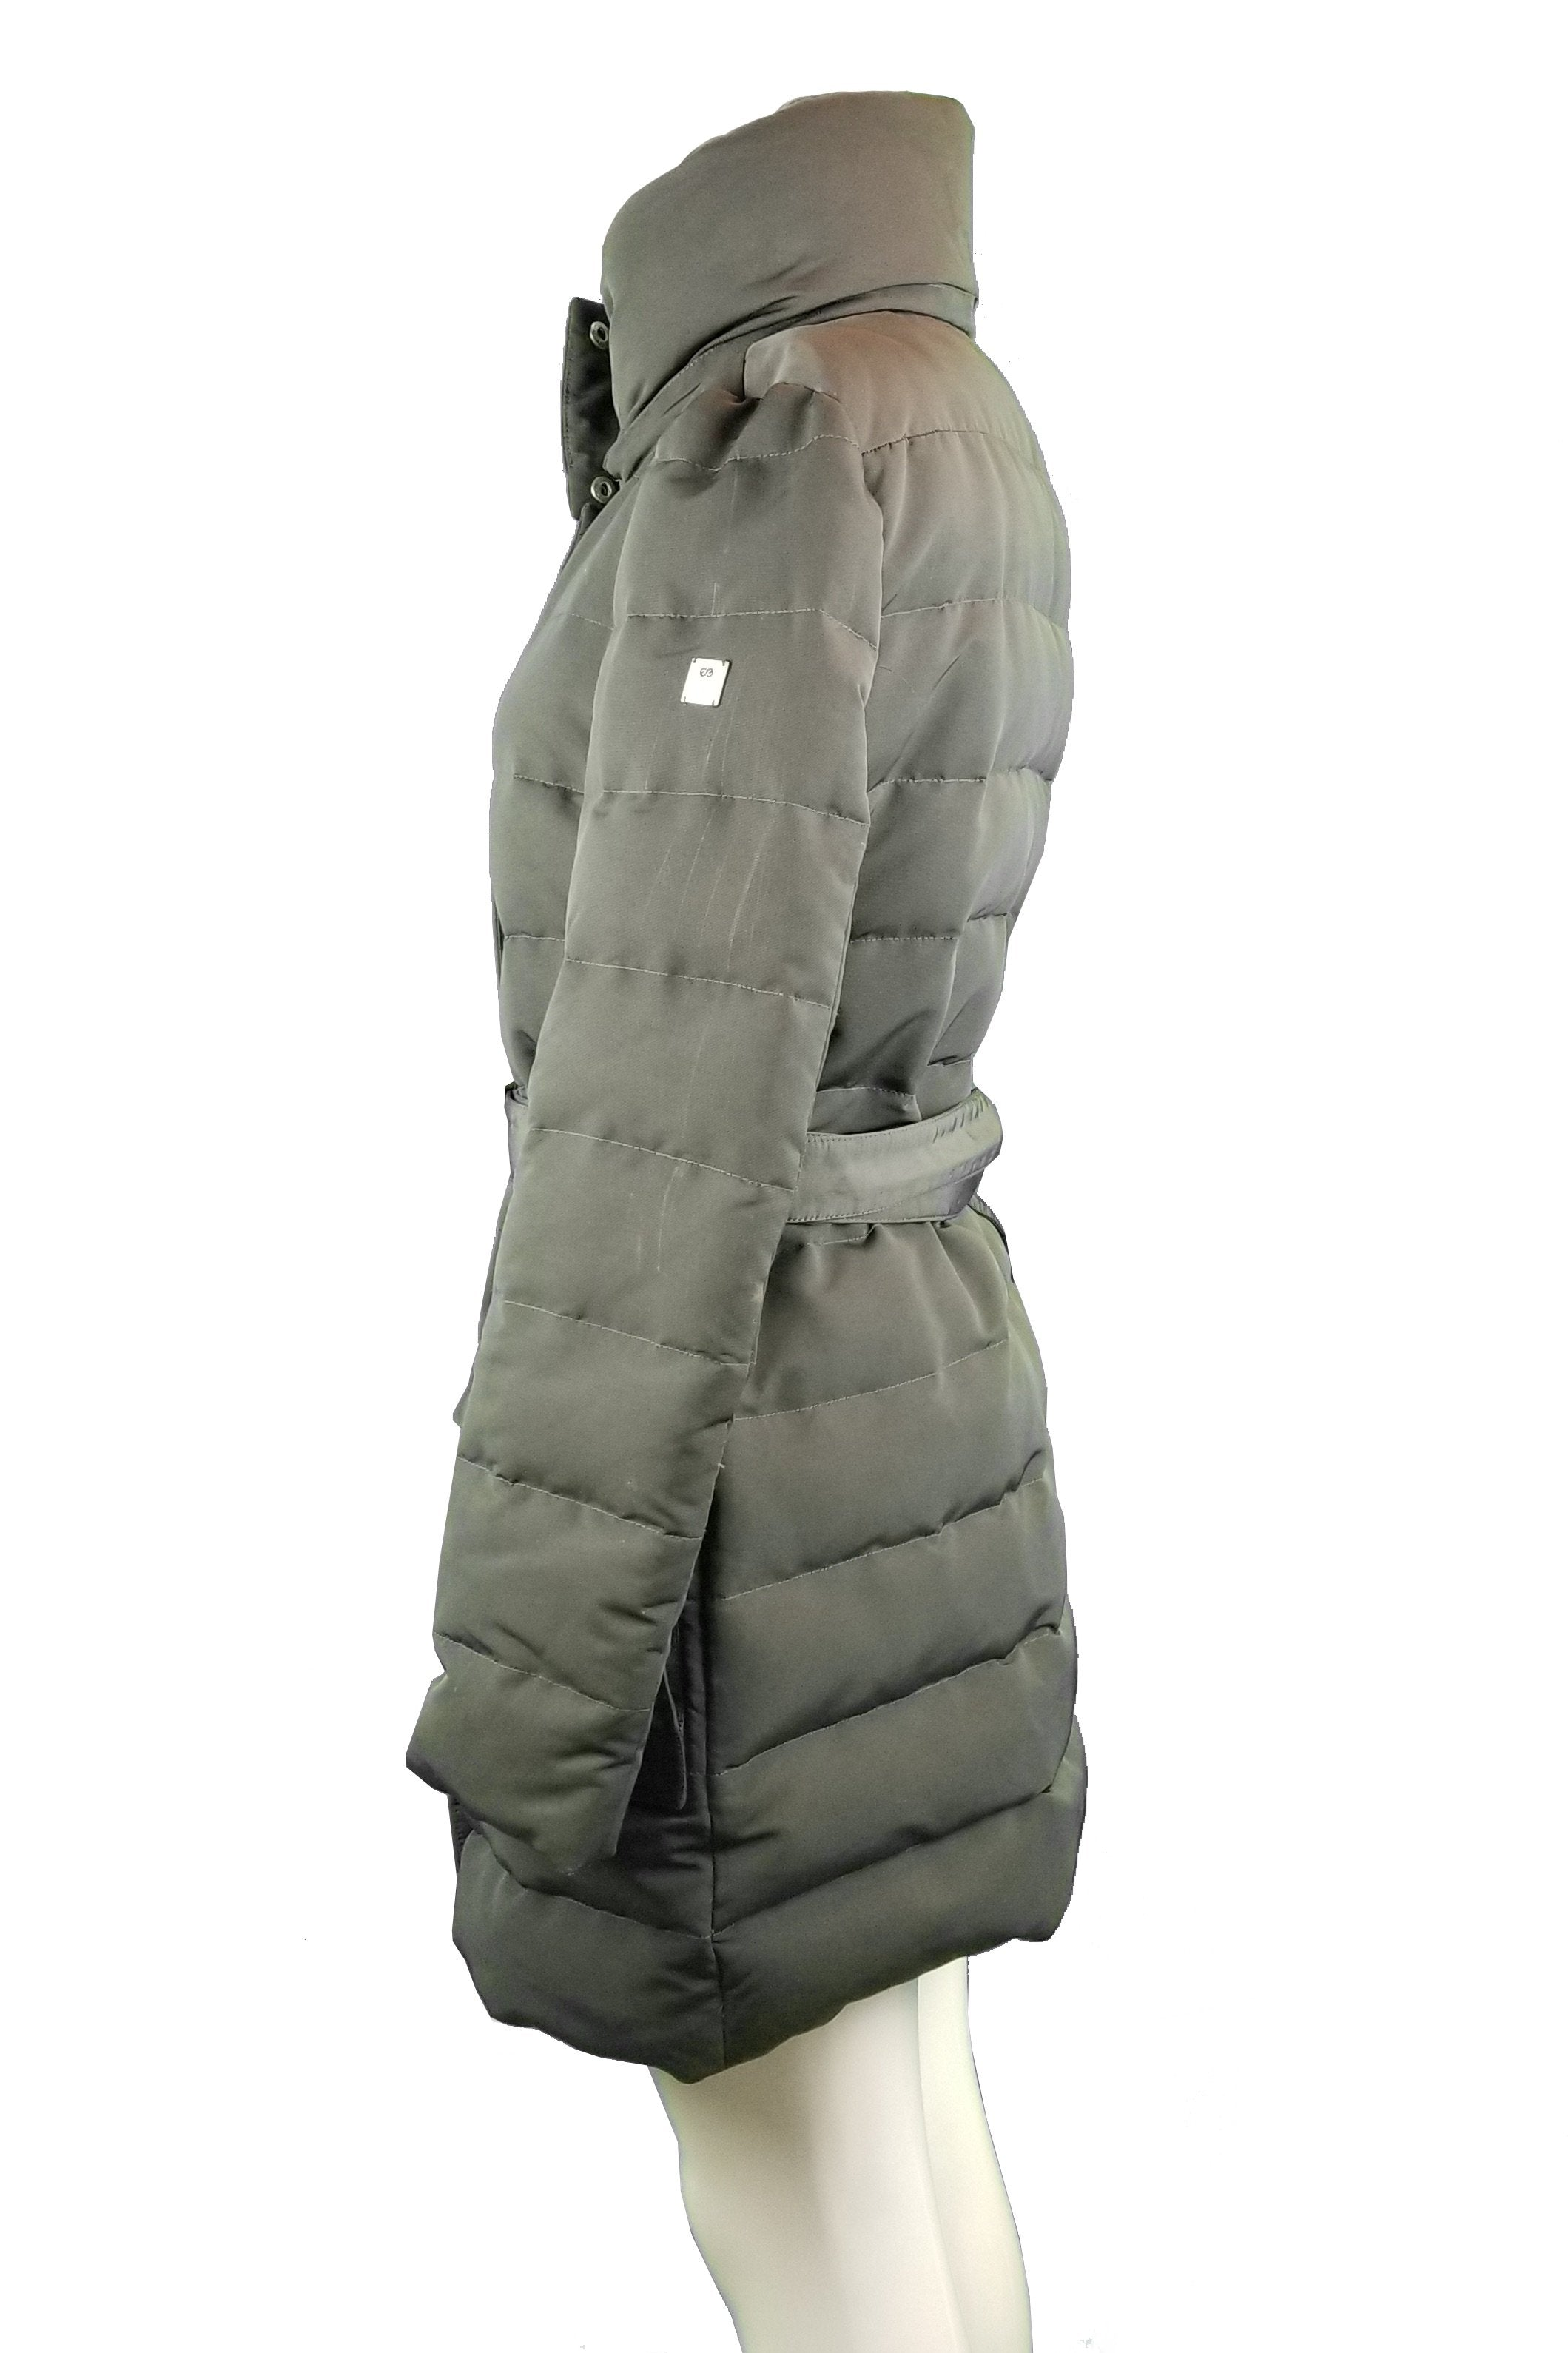 Escada Sport Down Jacket, Dressing warm doesn't have to be dull! This  winter jacket will keep you away from the cold and make you feel so stylish., Grey, Lining 100% Polyester; filling 70% Goose Down, 30% goose Quill, women's down jacket, women's winter jacket, down jacket, long jacket, warm winter jacket